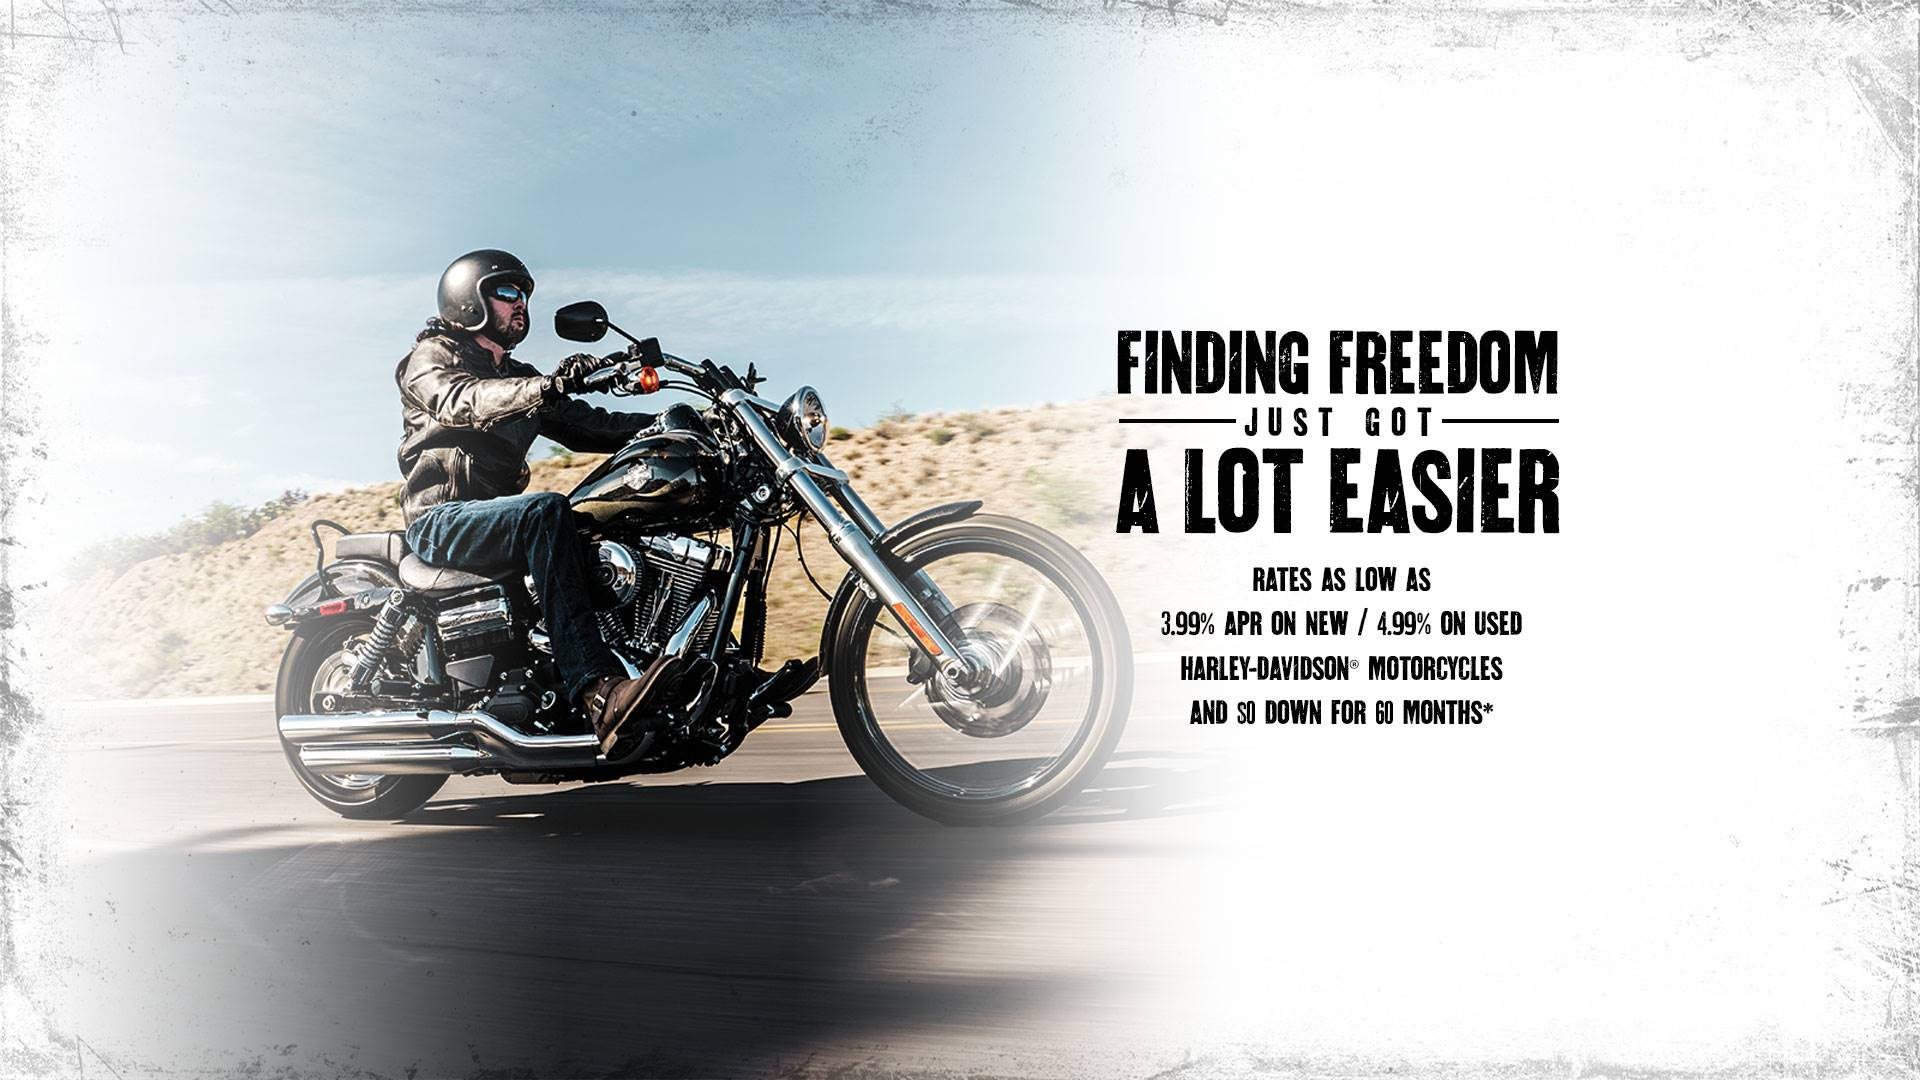 Harley-Davidson - LOW RATE PROMOTIONS ON NEW AND USED